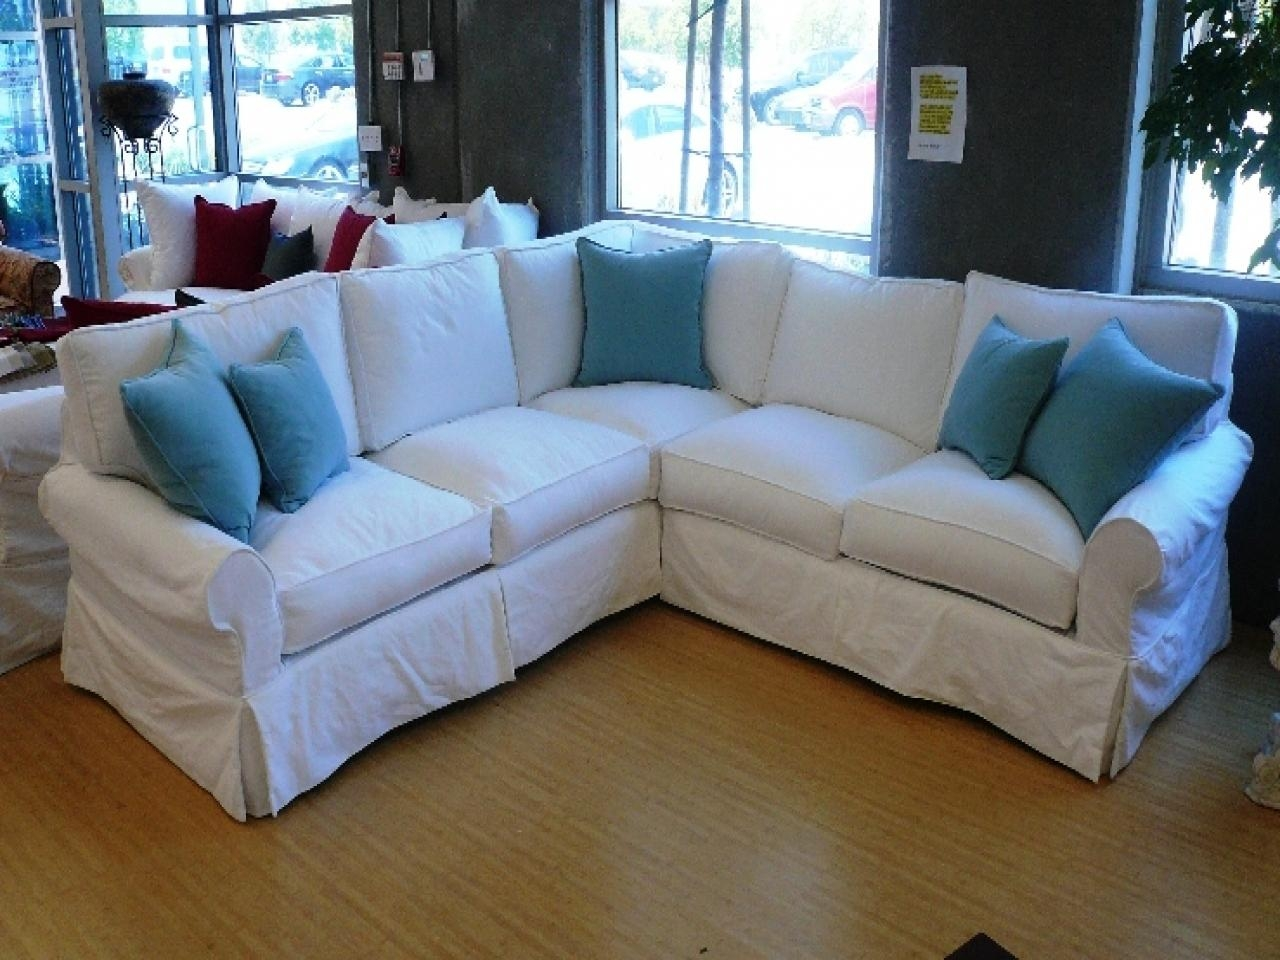 Sectional couch covers recliner sectional couch covers for Sectional sofa slipcovers walmart